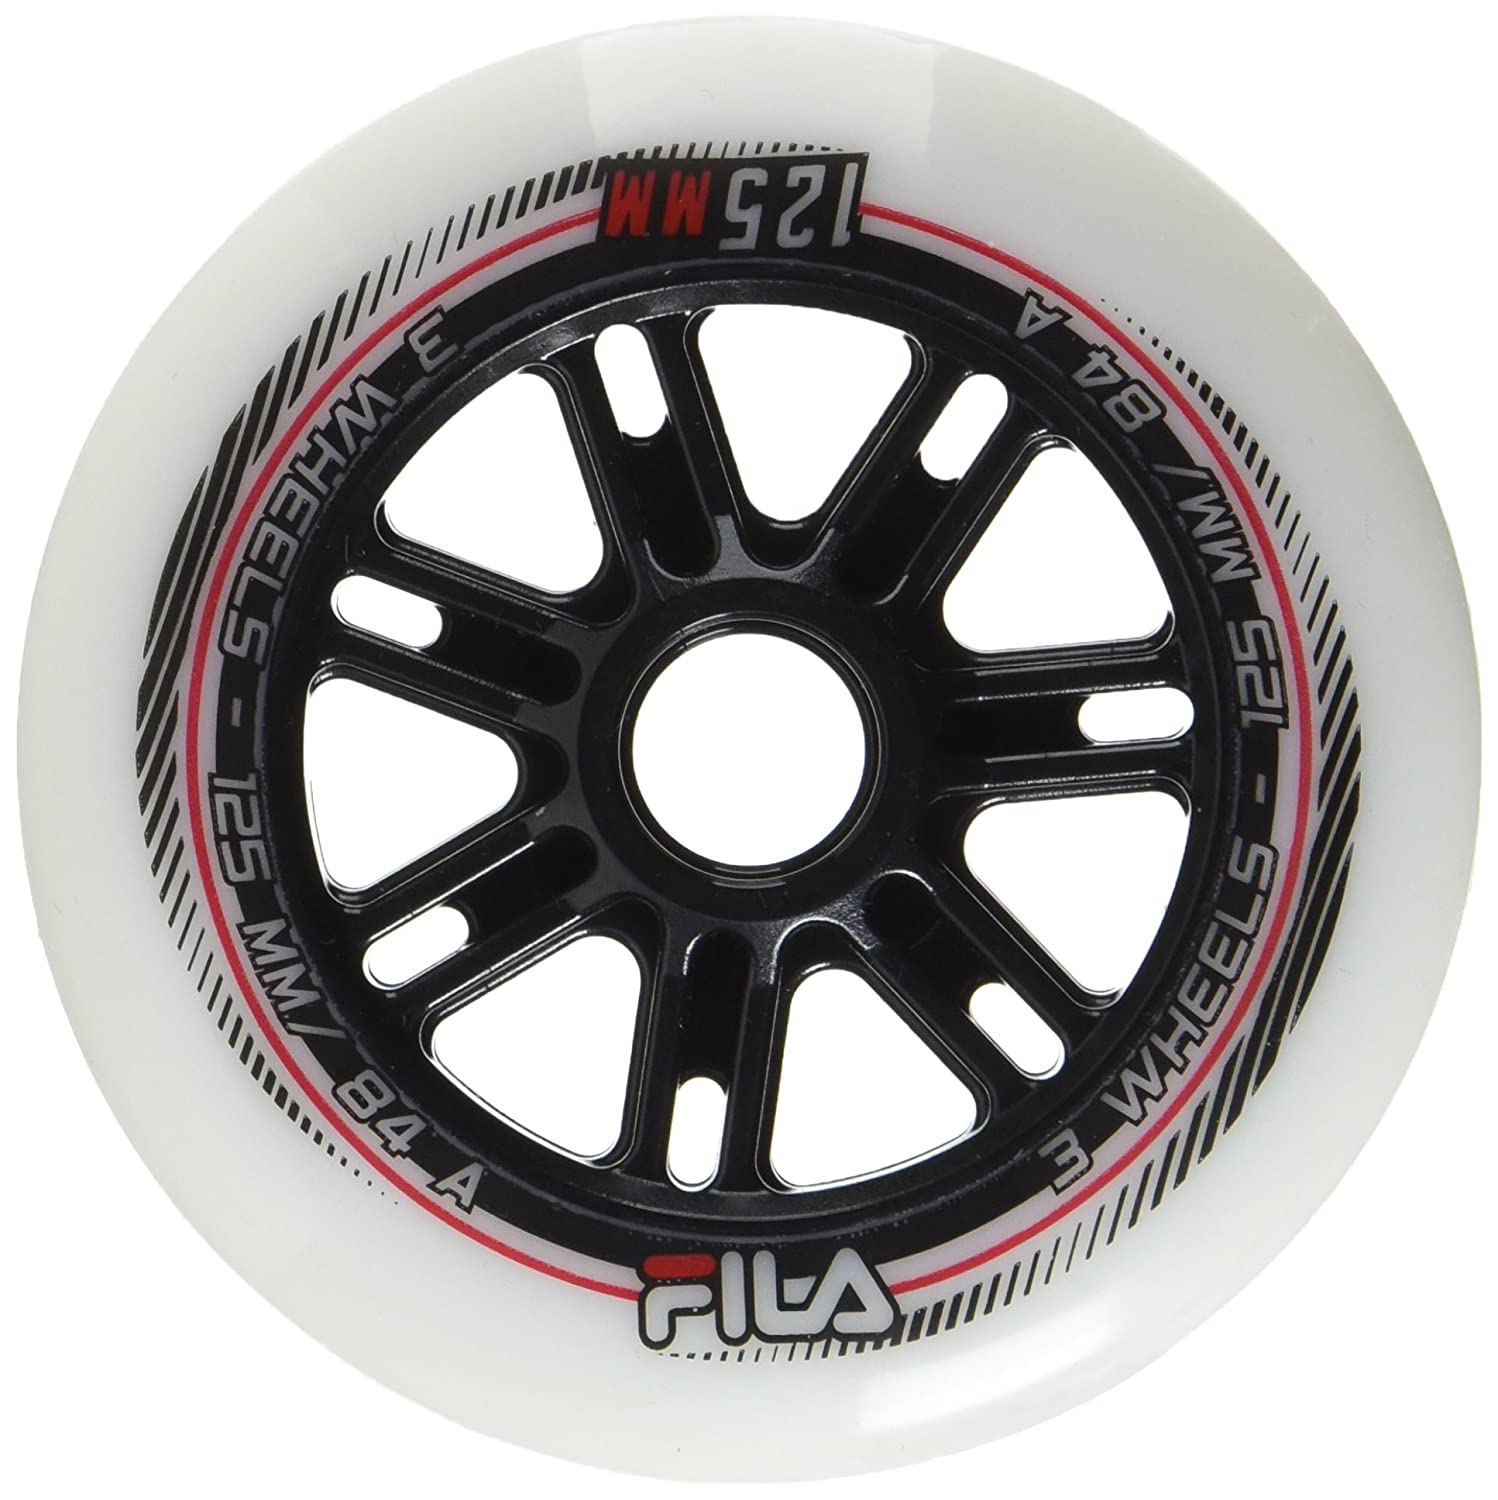 Fila Wheels 72mm/84A X 8 Rotoli, Bianco (Weiß), 100 mm